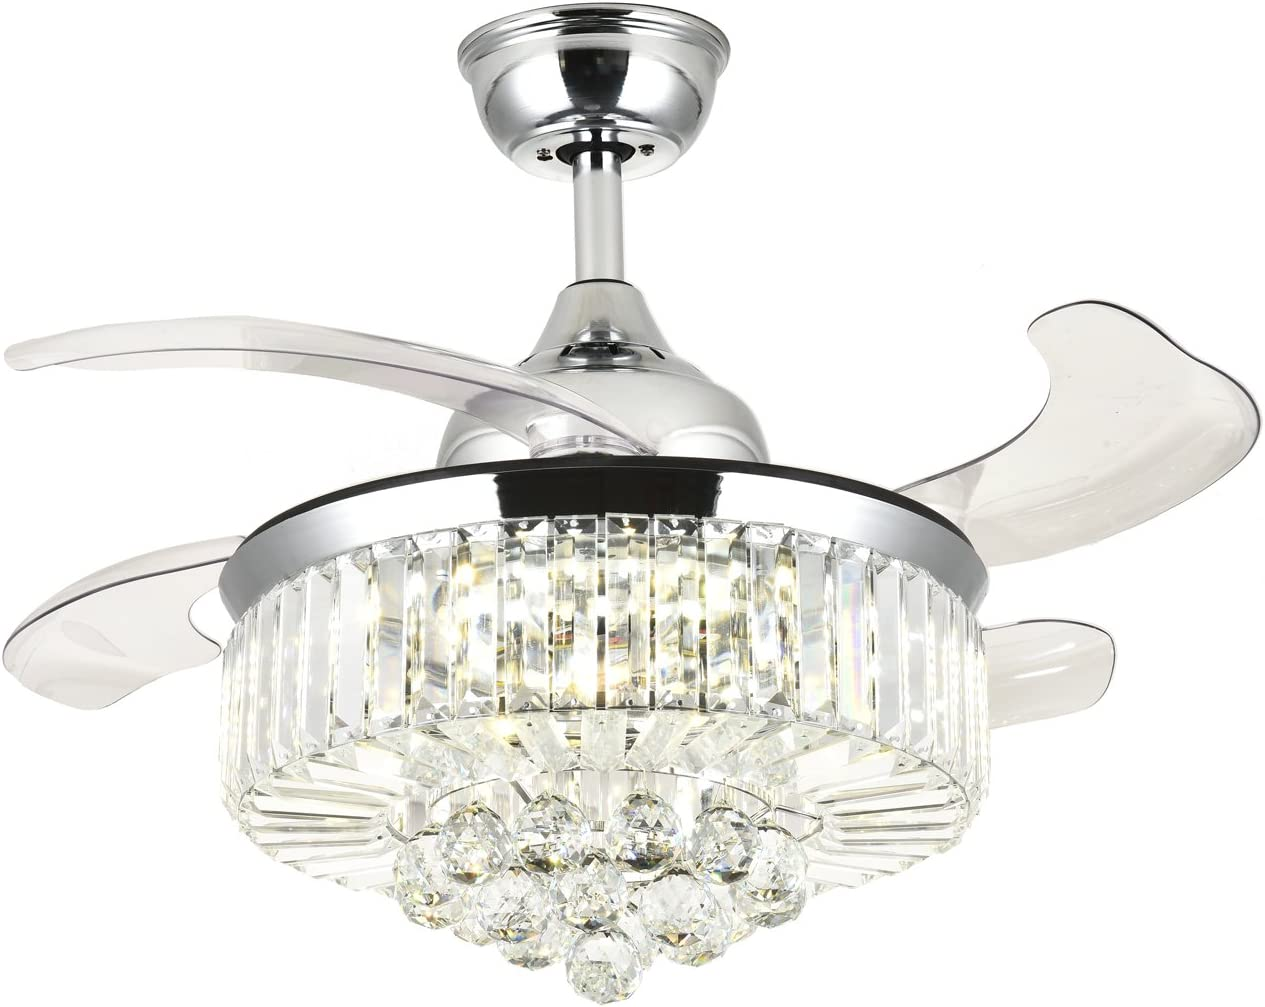 42 Max 86% OFF Inches Reverse Dimmable Fandelier L Fans with Ceiling Max 77% OFF Crystal